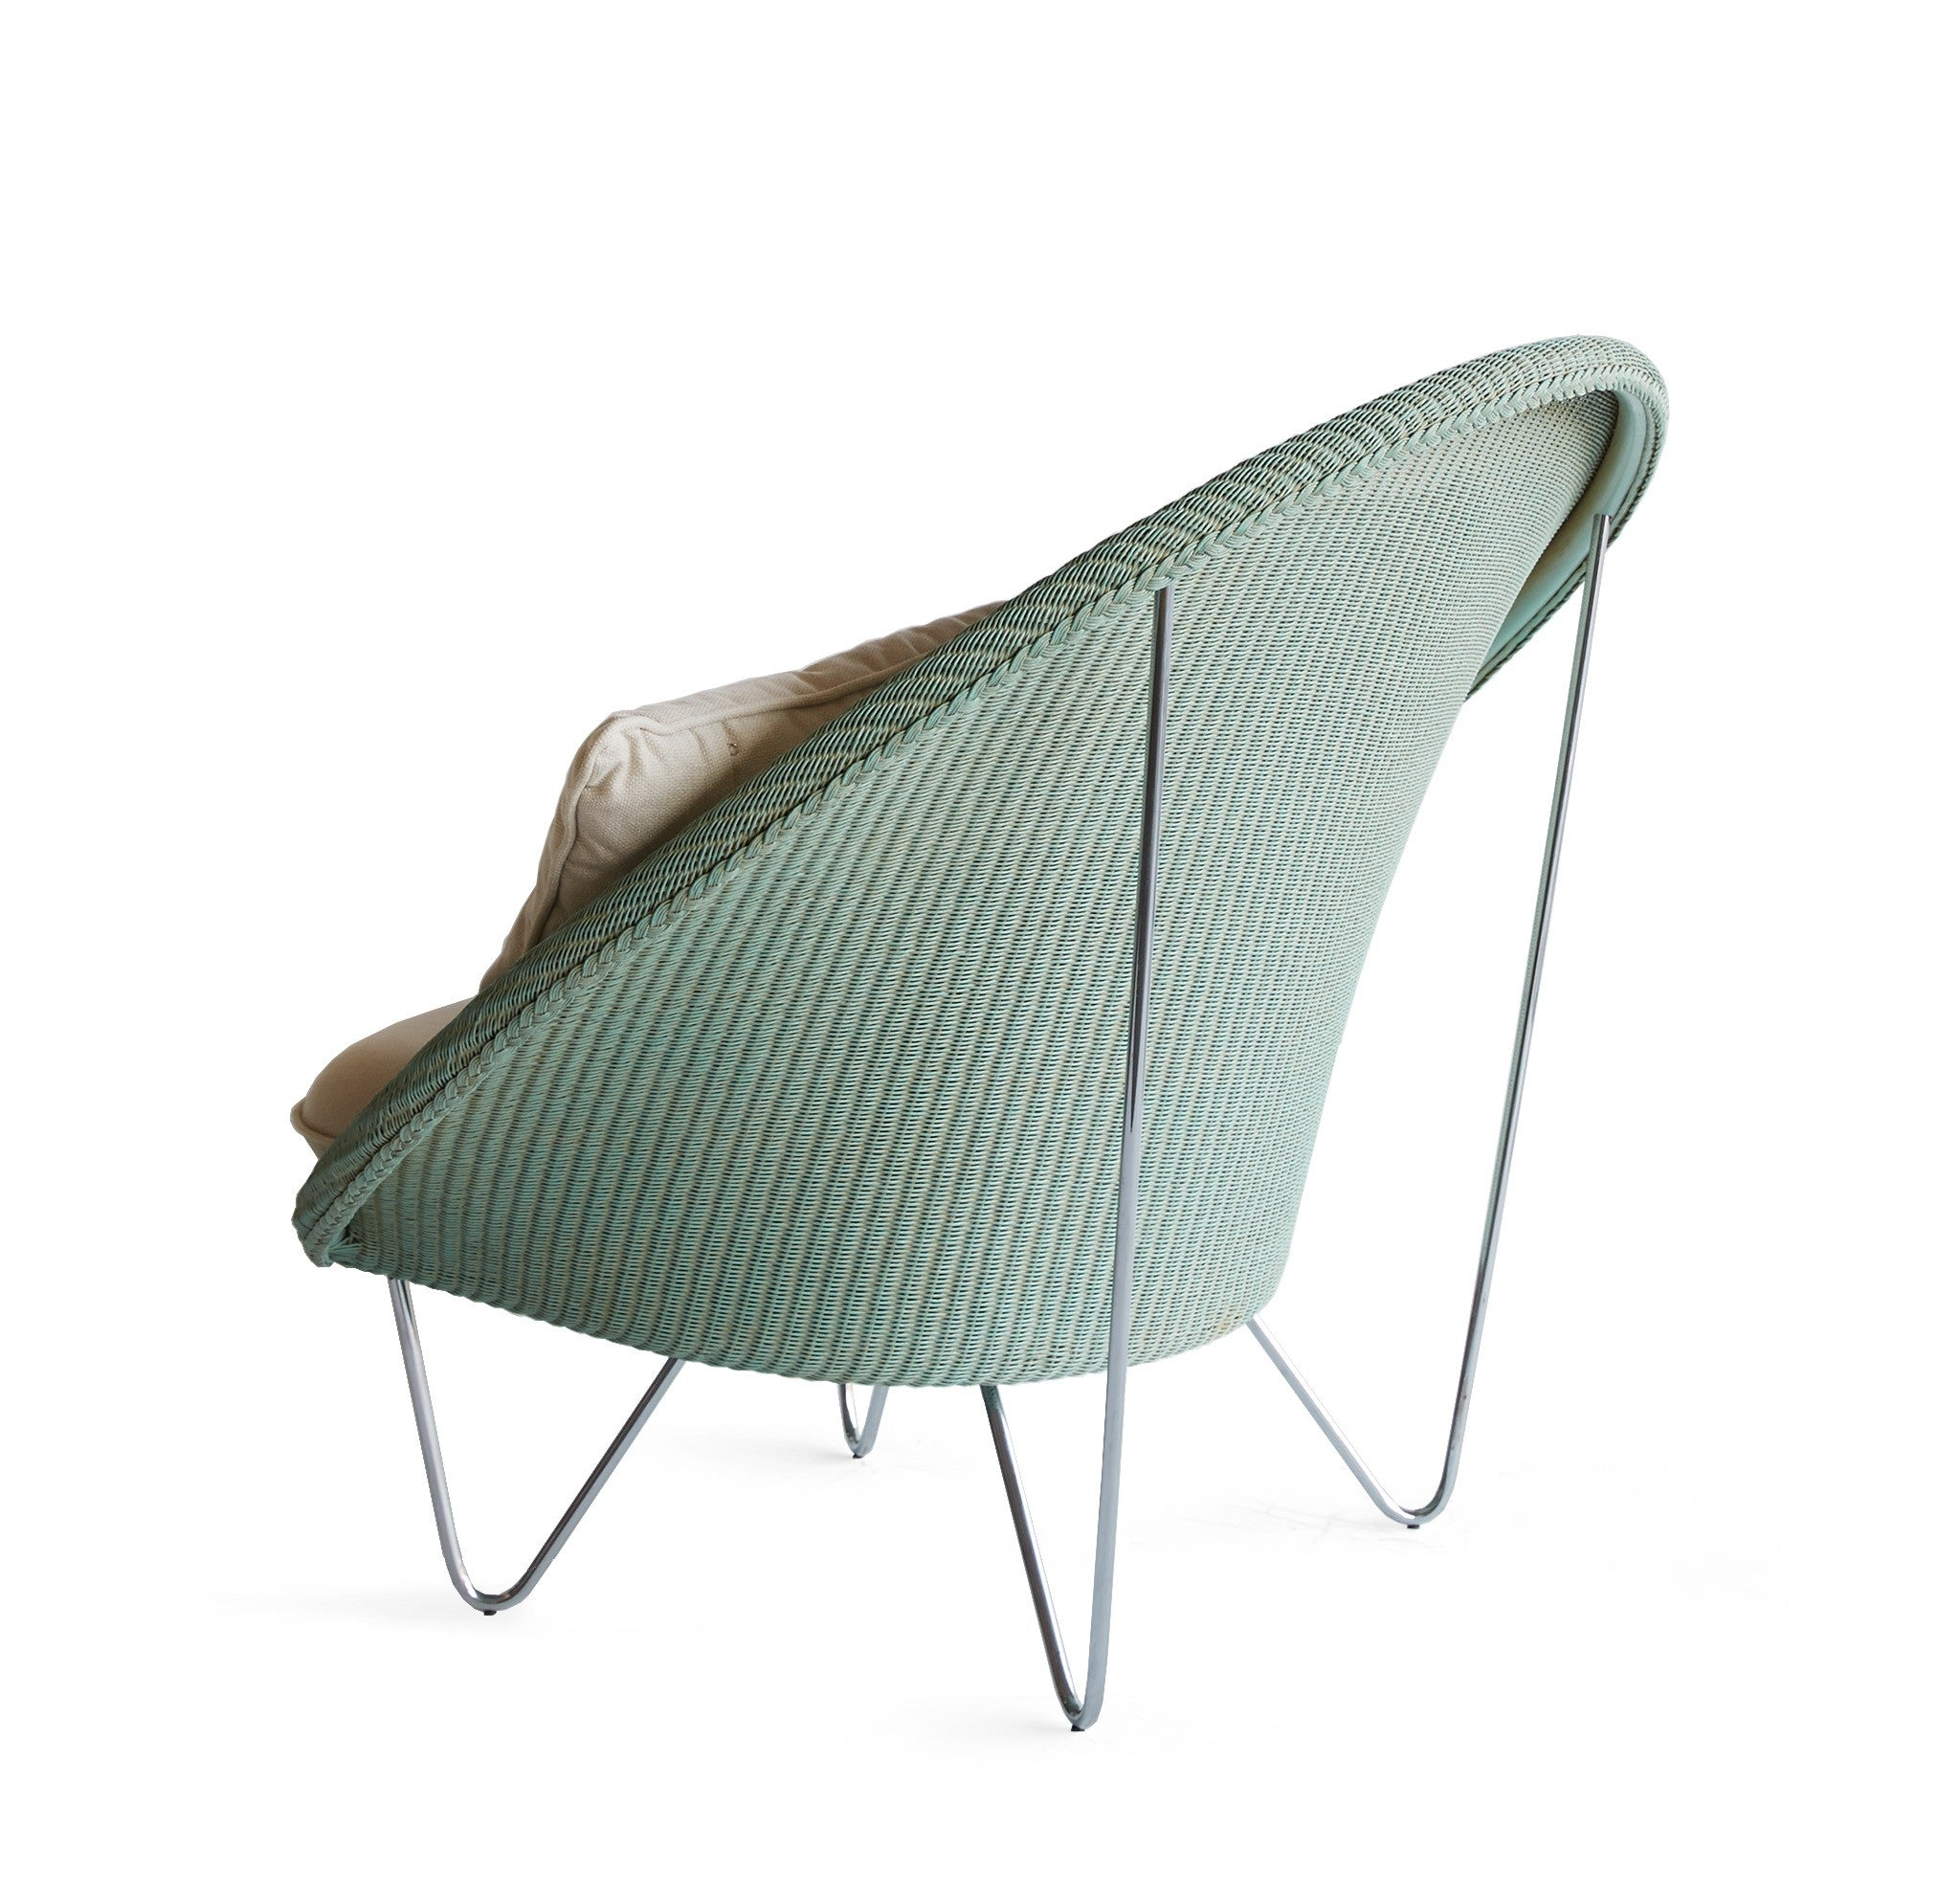 Joe Lounge Chair | Aqua MW - Vincent Sheppard - Originals Furniture - Singapore - 2